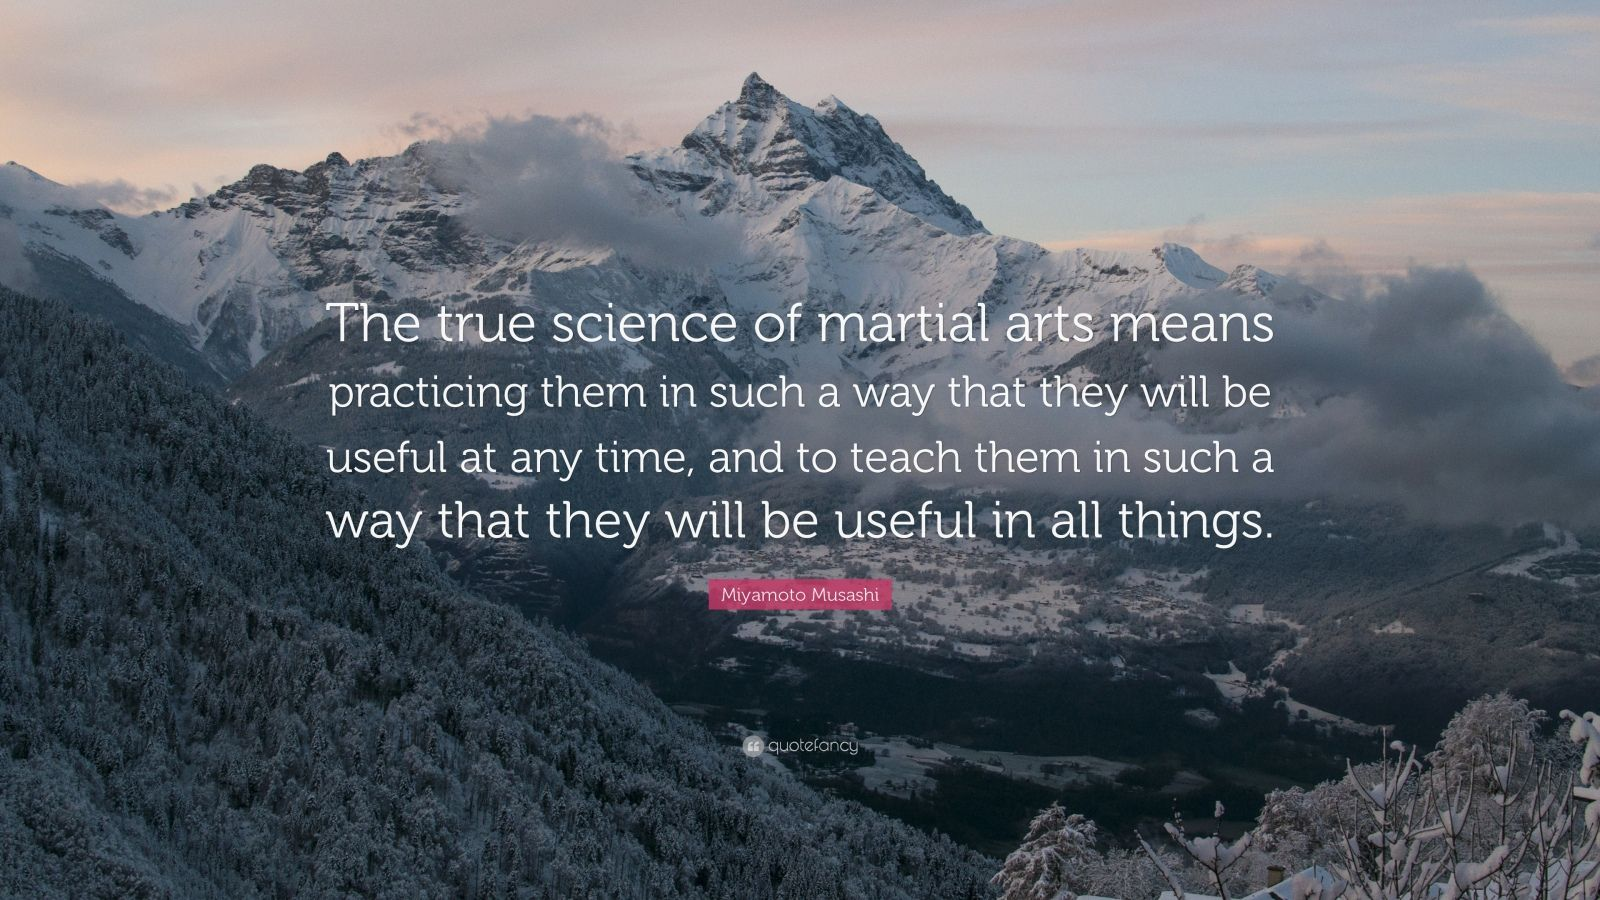 """Miyamoto Musashi Quote: """"The true science of martial arts means practicing them in such a way that they will be useful at any time, and to teach them in such a way that they will be useful in all things."""""""